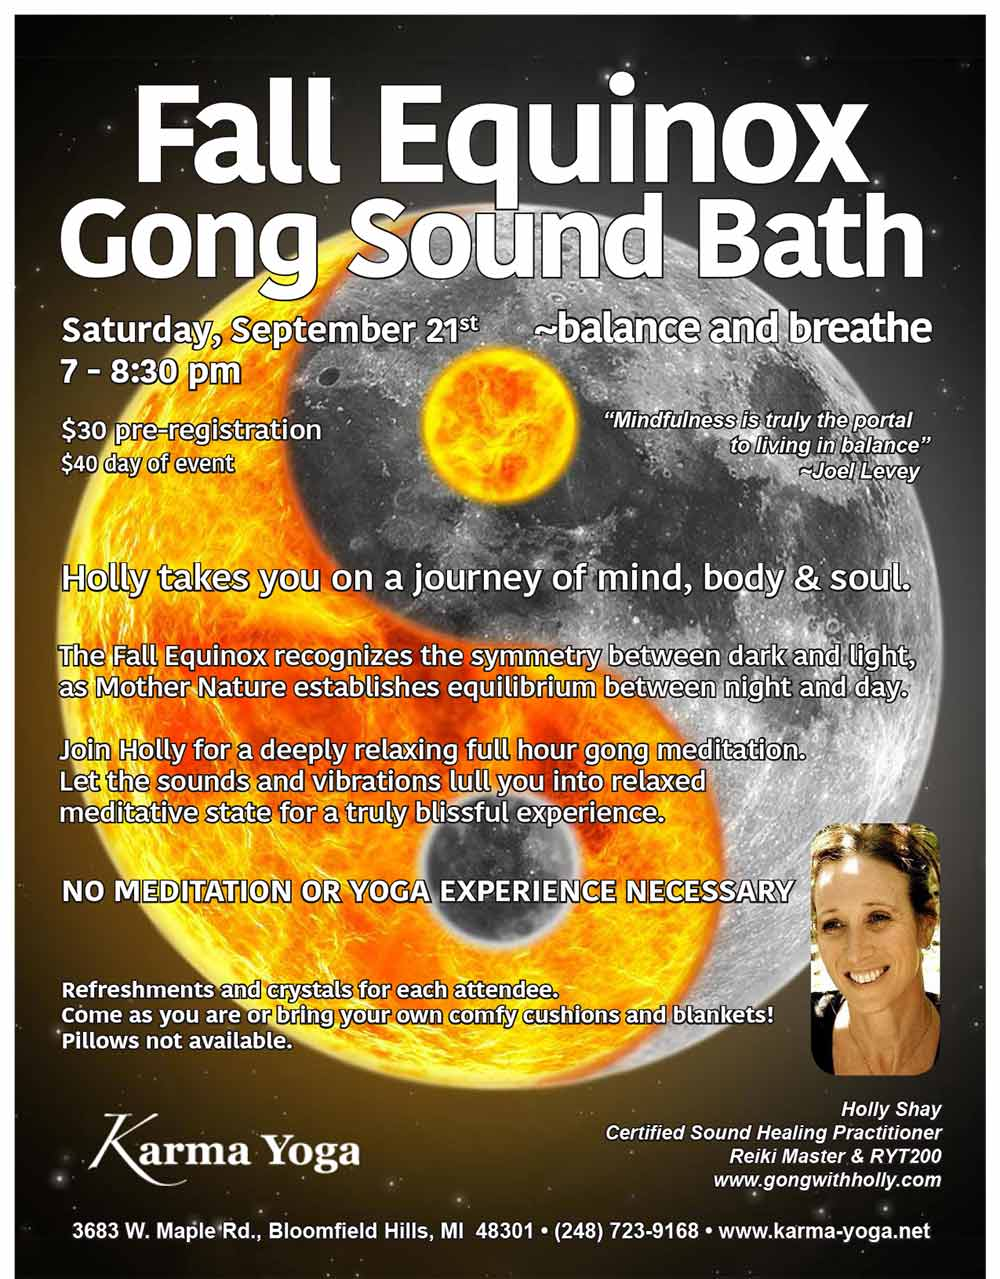 Fall Equinox Gong Sound Bath, Sept 21st, Karma Yoga, Bloomfield Hills Holly Shay Certified Sound Healing Practitioner Reiki Master & RYT200 www.gongwithholly.com